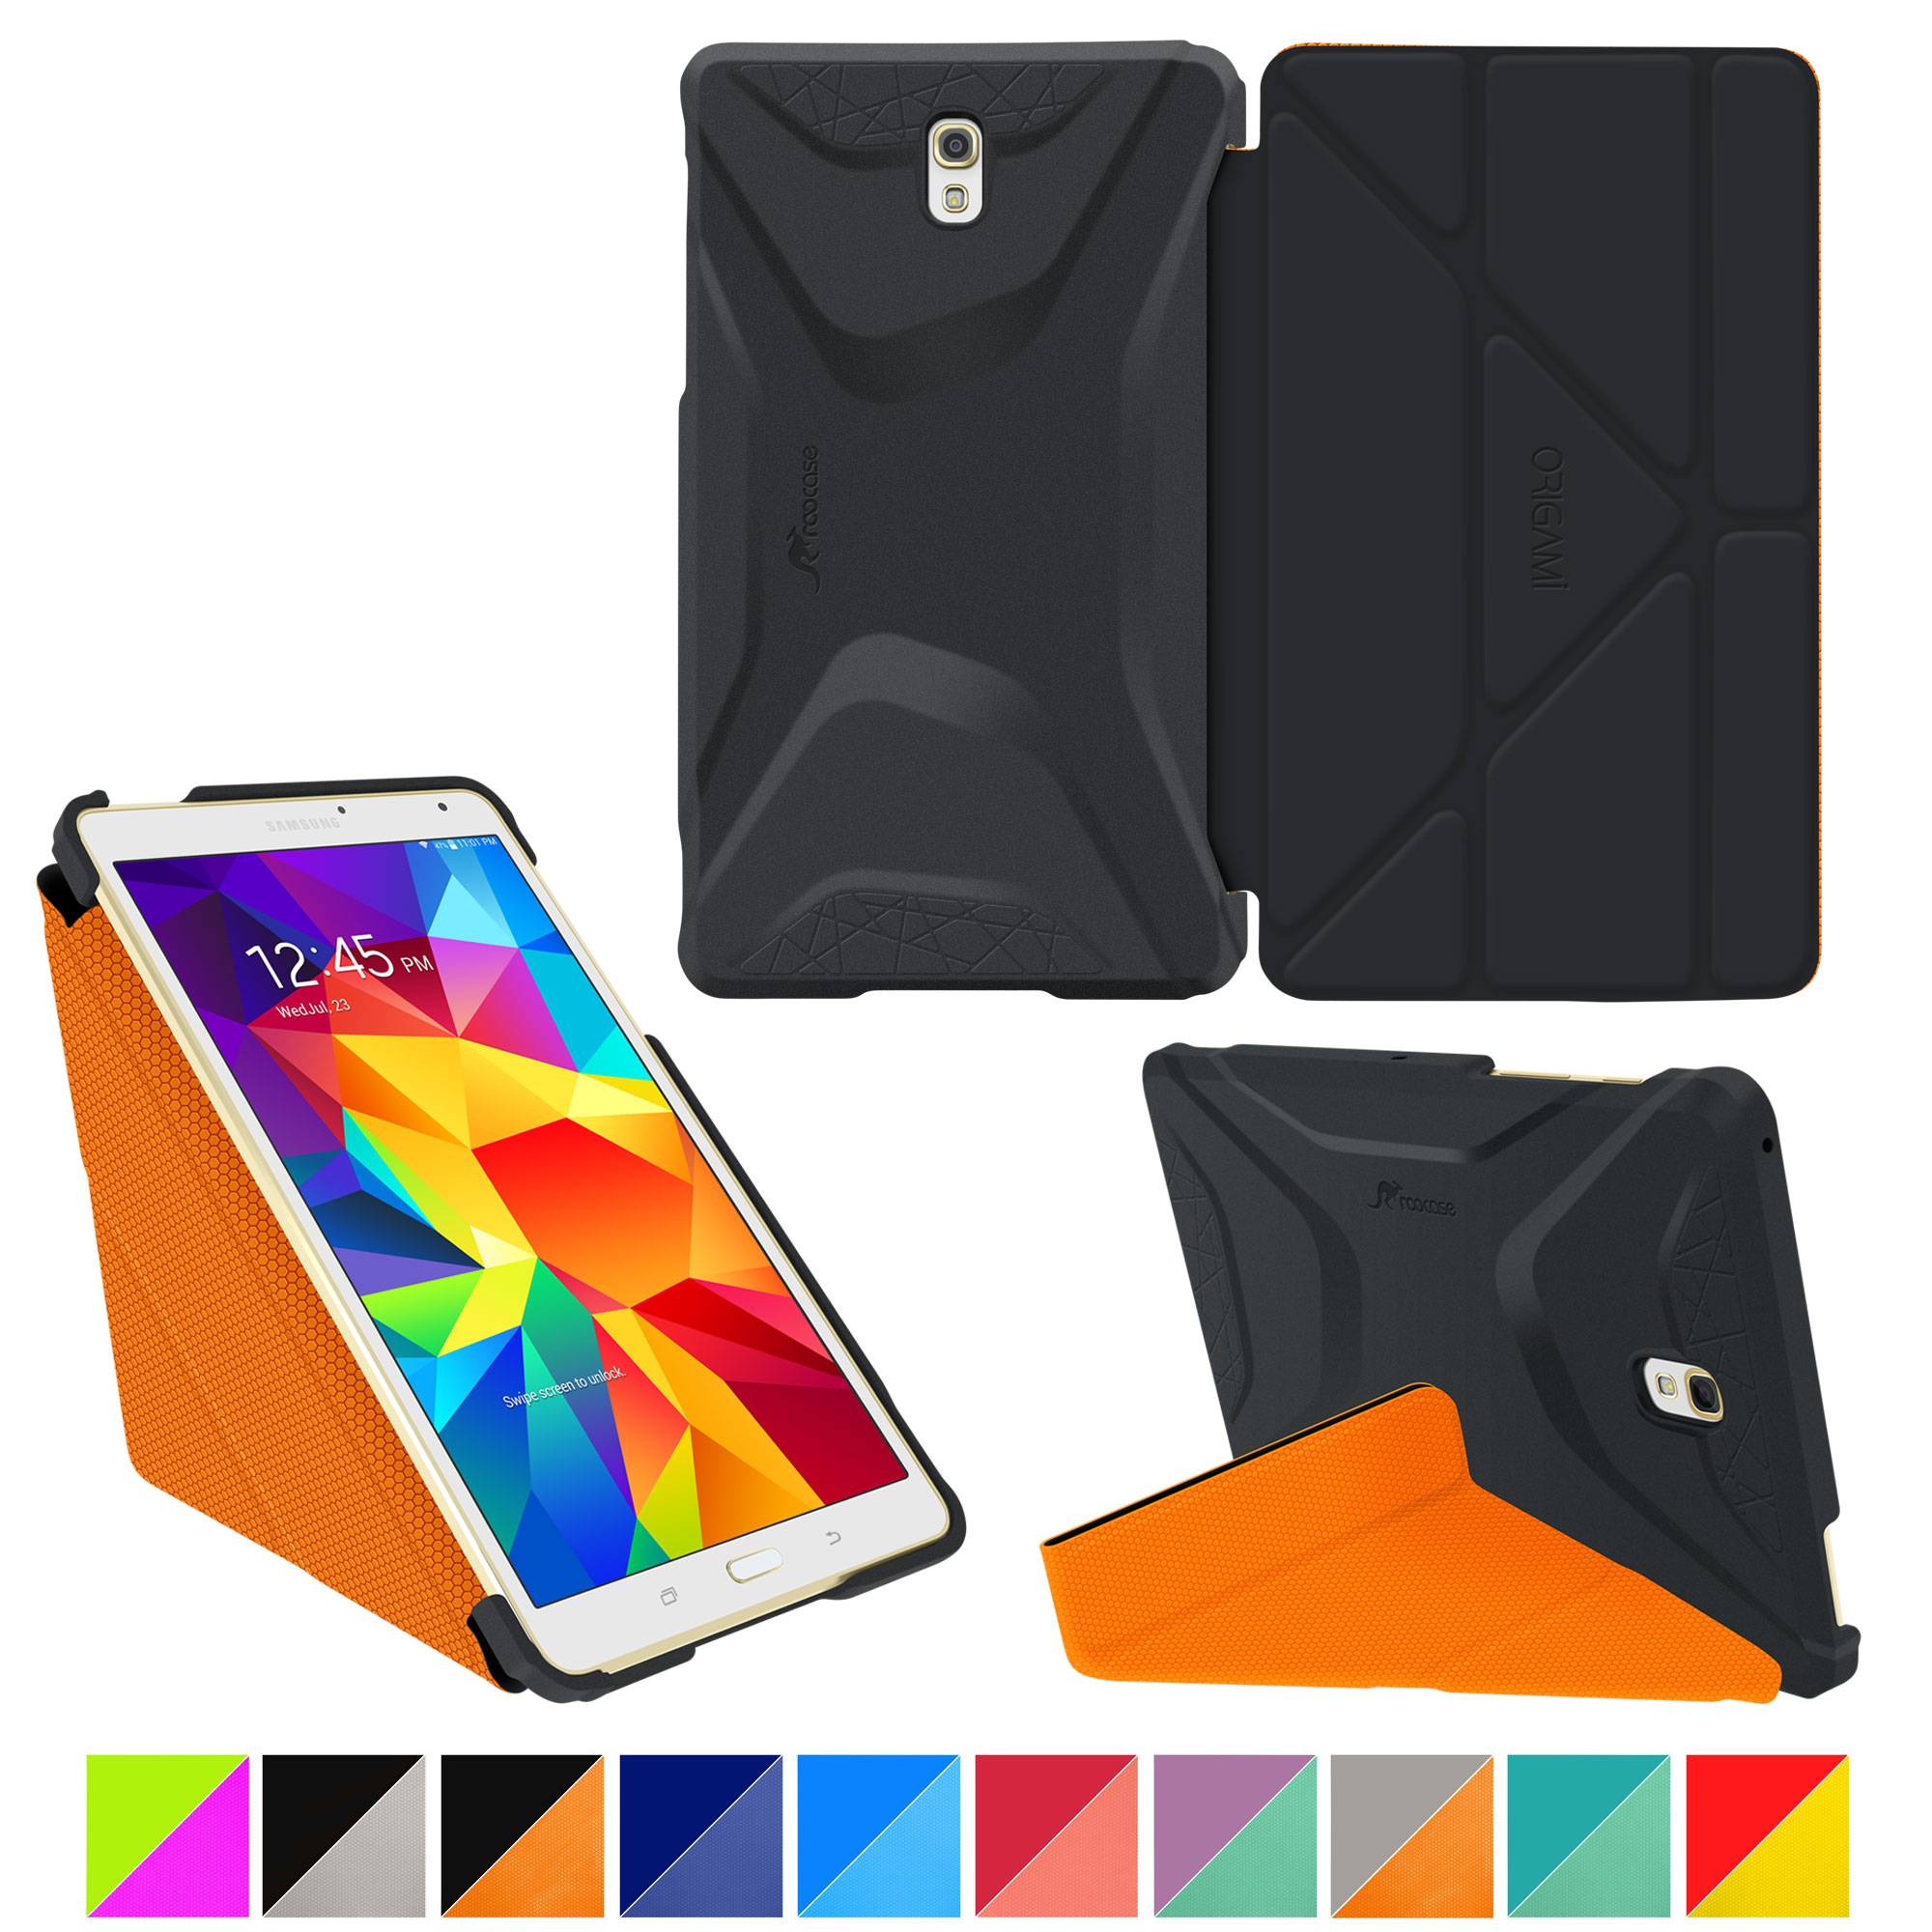 Galaxy Tab S 8.4 Case, Samsung Galaxy Tab S 8.4 case, rooCASE Origami (3 Way Stand) Slim Shell Lightweight Tablet Folio Smart Cover Black/Orange